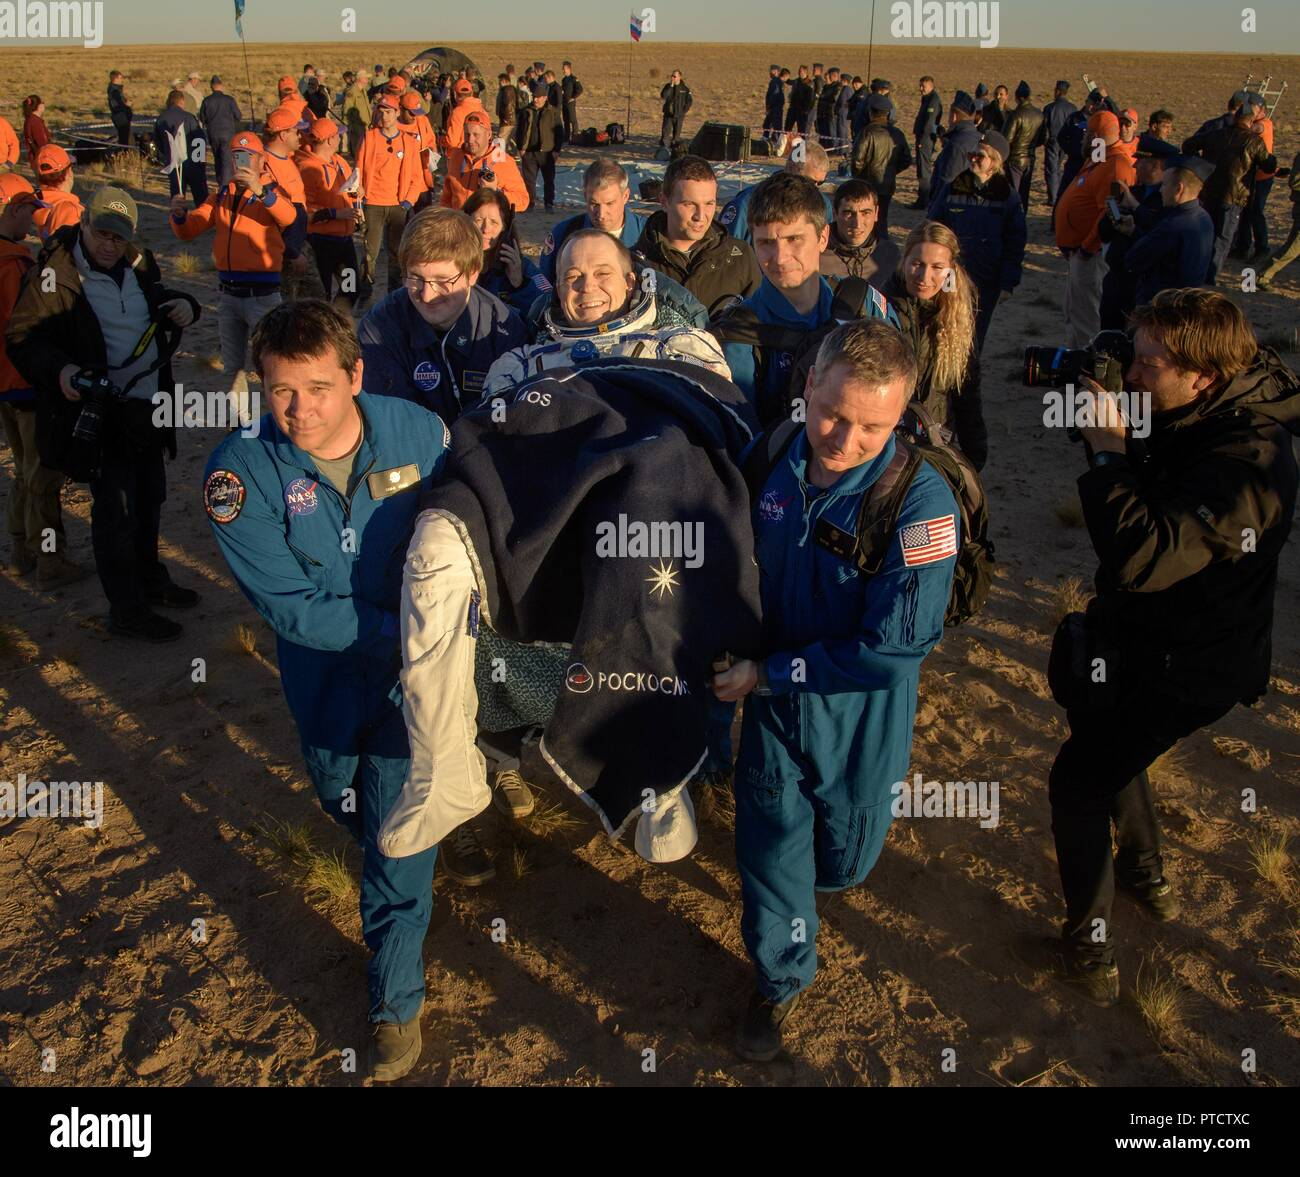 International Space Station Expedition 56 astronaut Ricky Arnold is carried to the medical tent shortly after landing aboard the Russian Soyuz MS-08 spacecraft October 4, 2018 near Zhezkazgan, Kazakhstan. - Stock Image